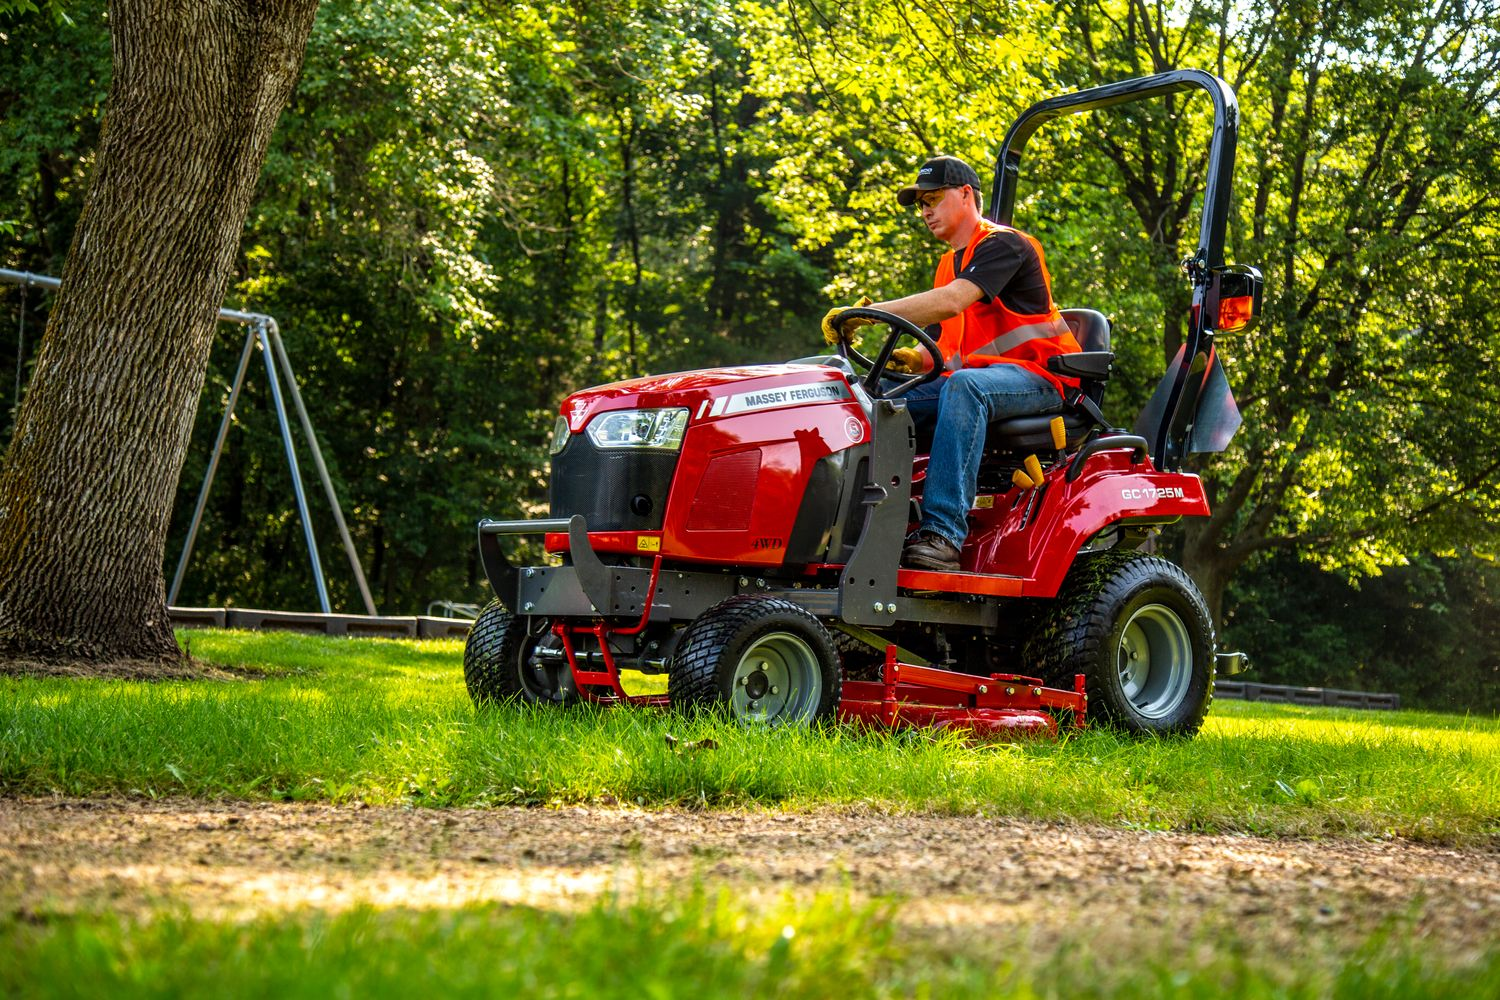 Massey Ferguson Adds Two Models of GC1700 Series Sub-compact